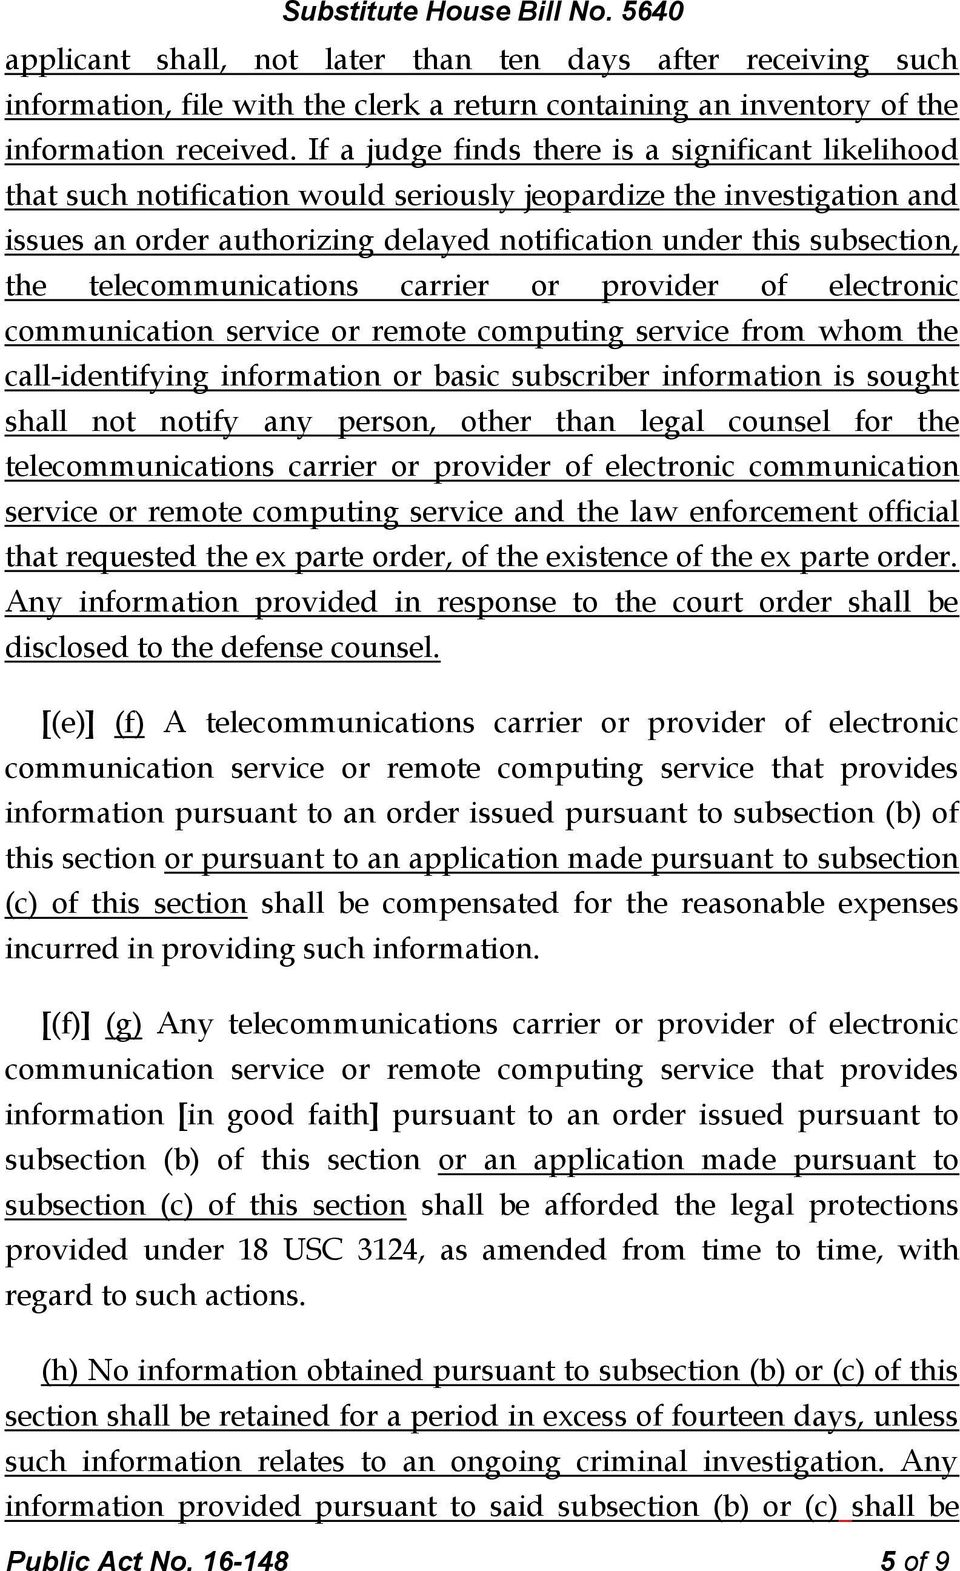 telecommunications carrier or provider of electronic communication service or remote computing service from whom the call-identifying information or basic subscriber information is sought shall not